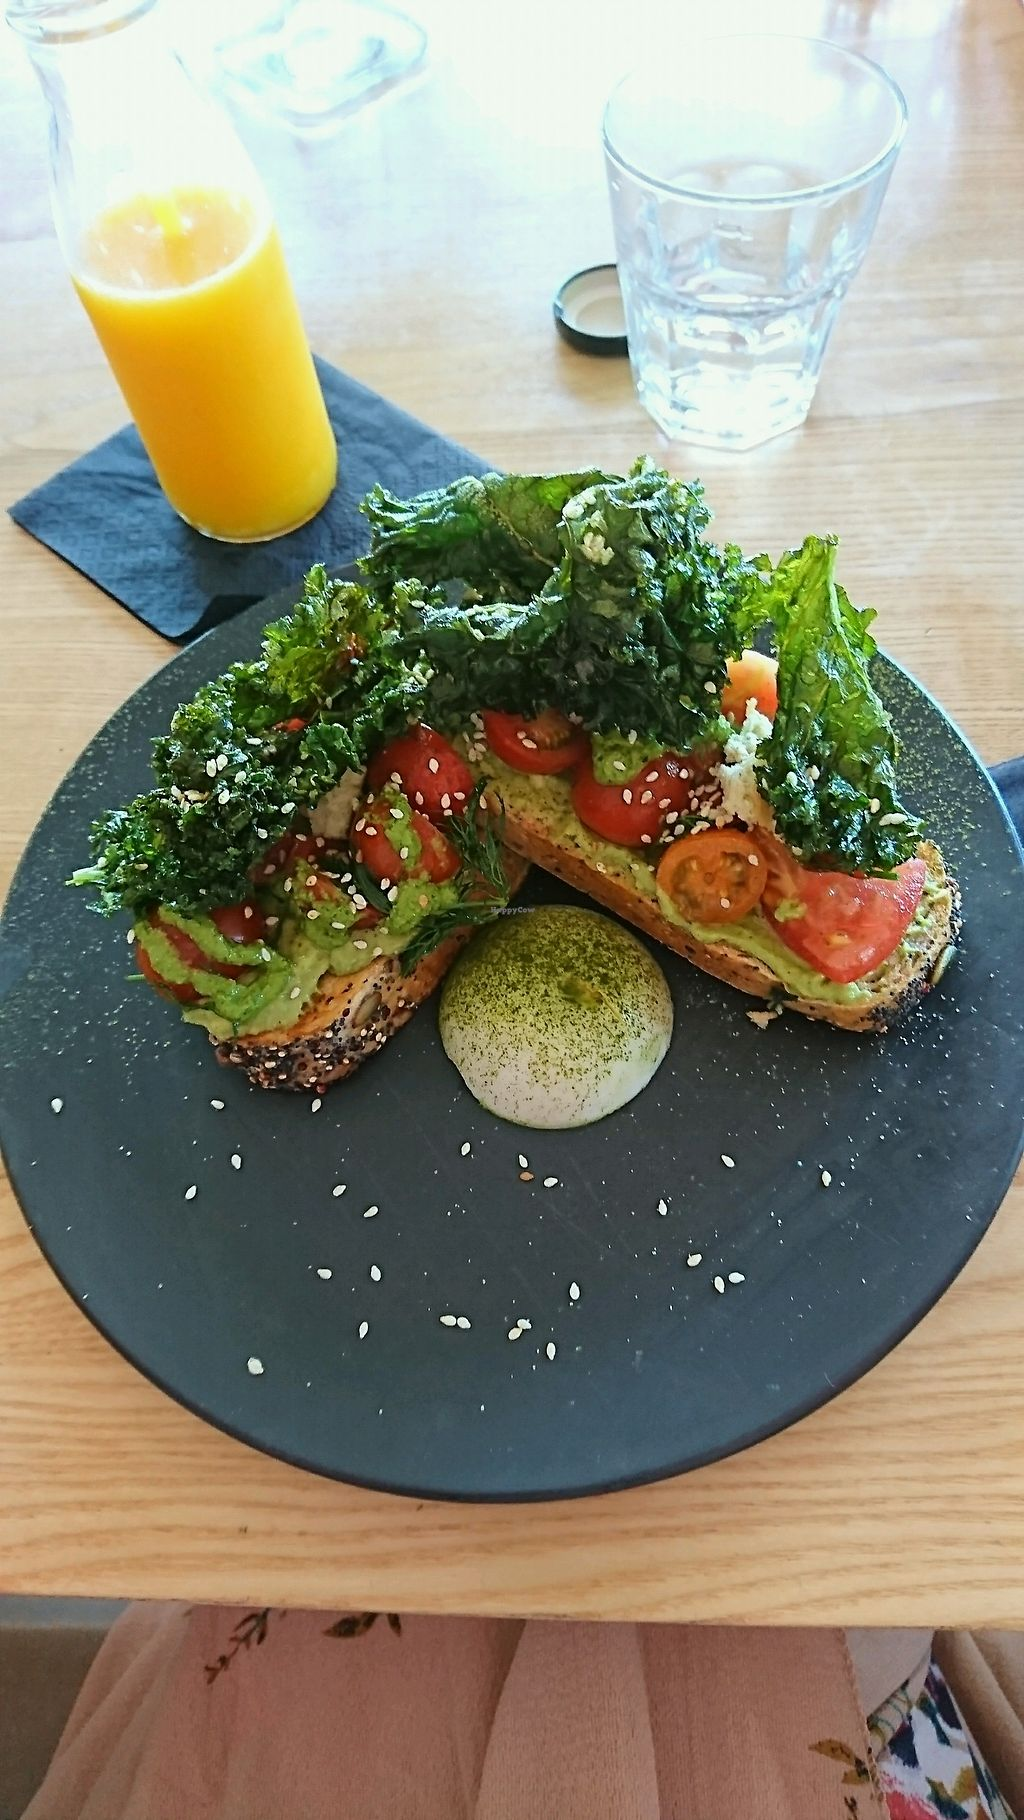 """Photo of Matcha Mylkbar  by <a href=""""/members/profile/LykaFox"""">LykaFox</a> <br/>Heirloom tomatoes with pesto and almond feta on avo on toast.  <br/> November 23, 2017  - <a href='/contact/abuse/image/71552/328253'>Report</a>"""